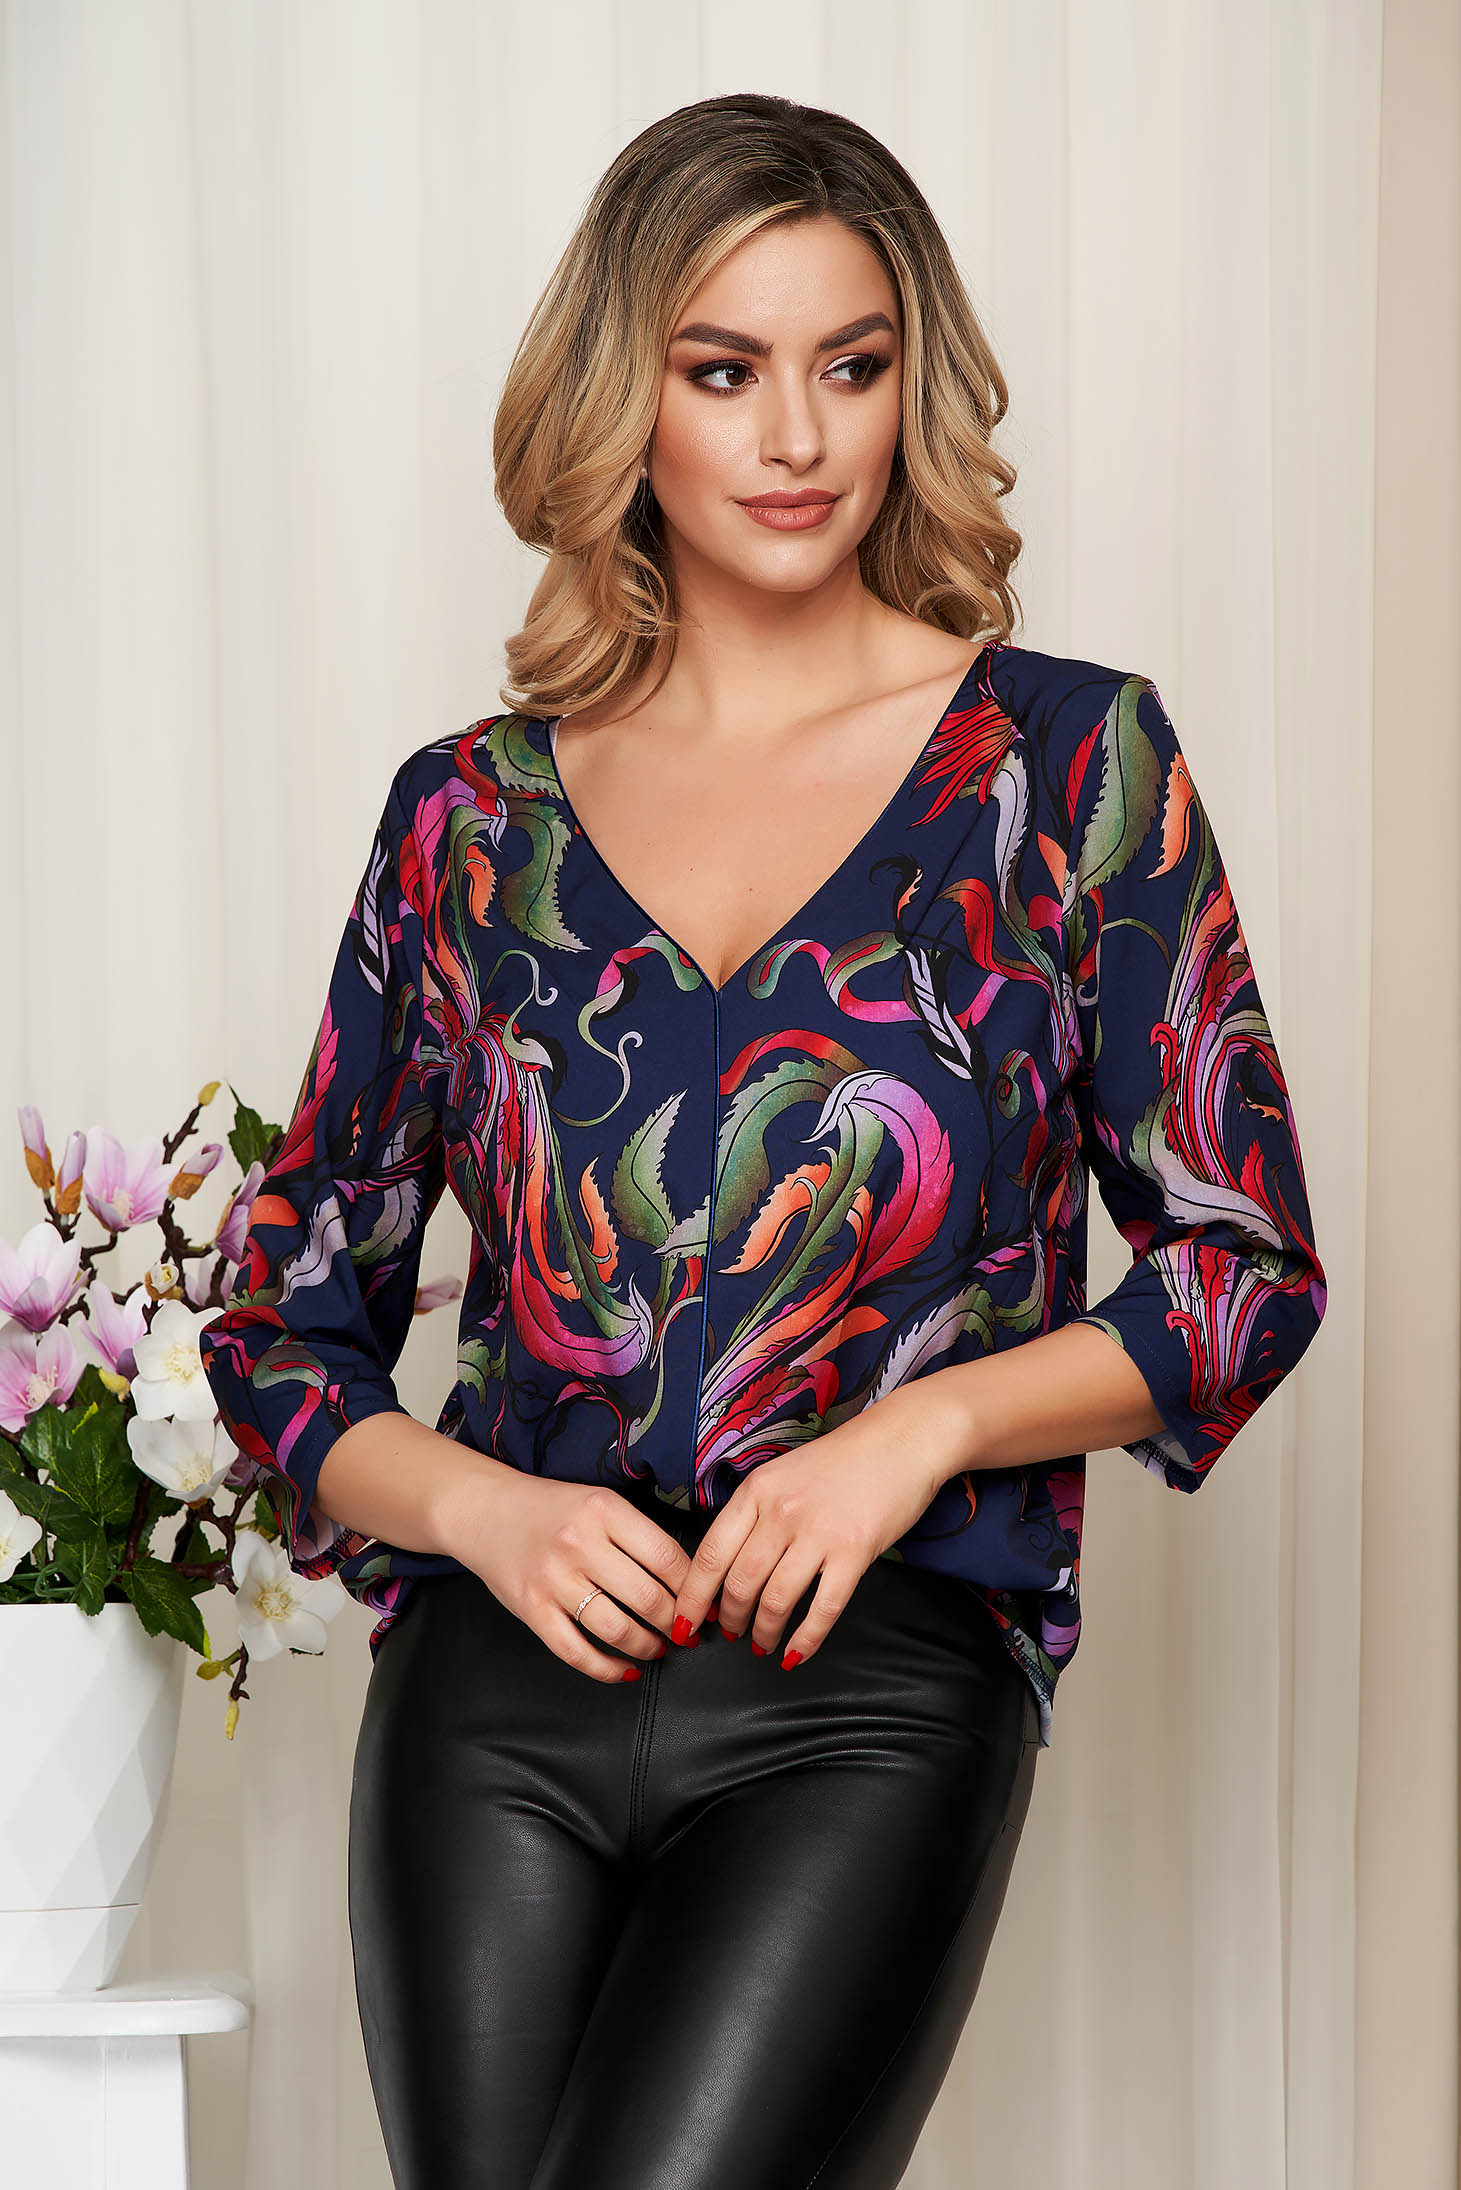 Women`s blouse coral with floral print v back neckline thin fabric